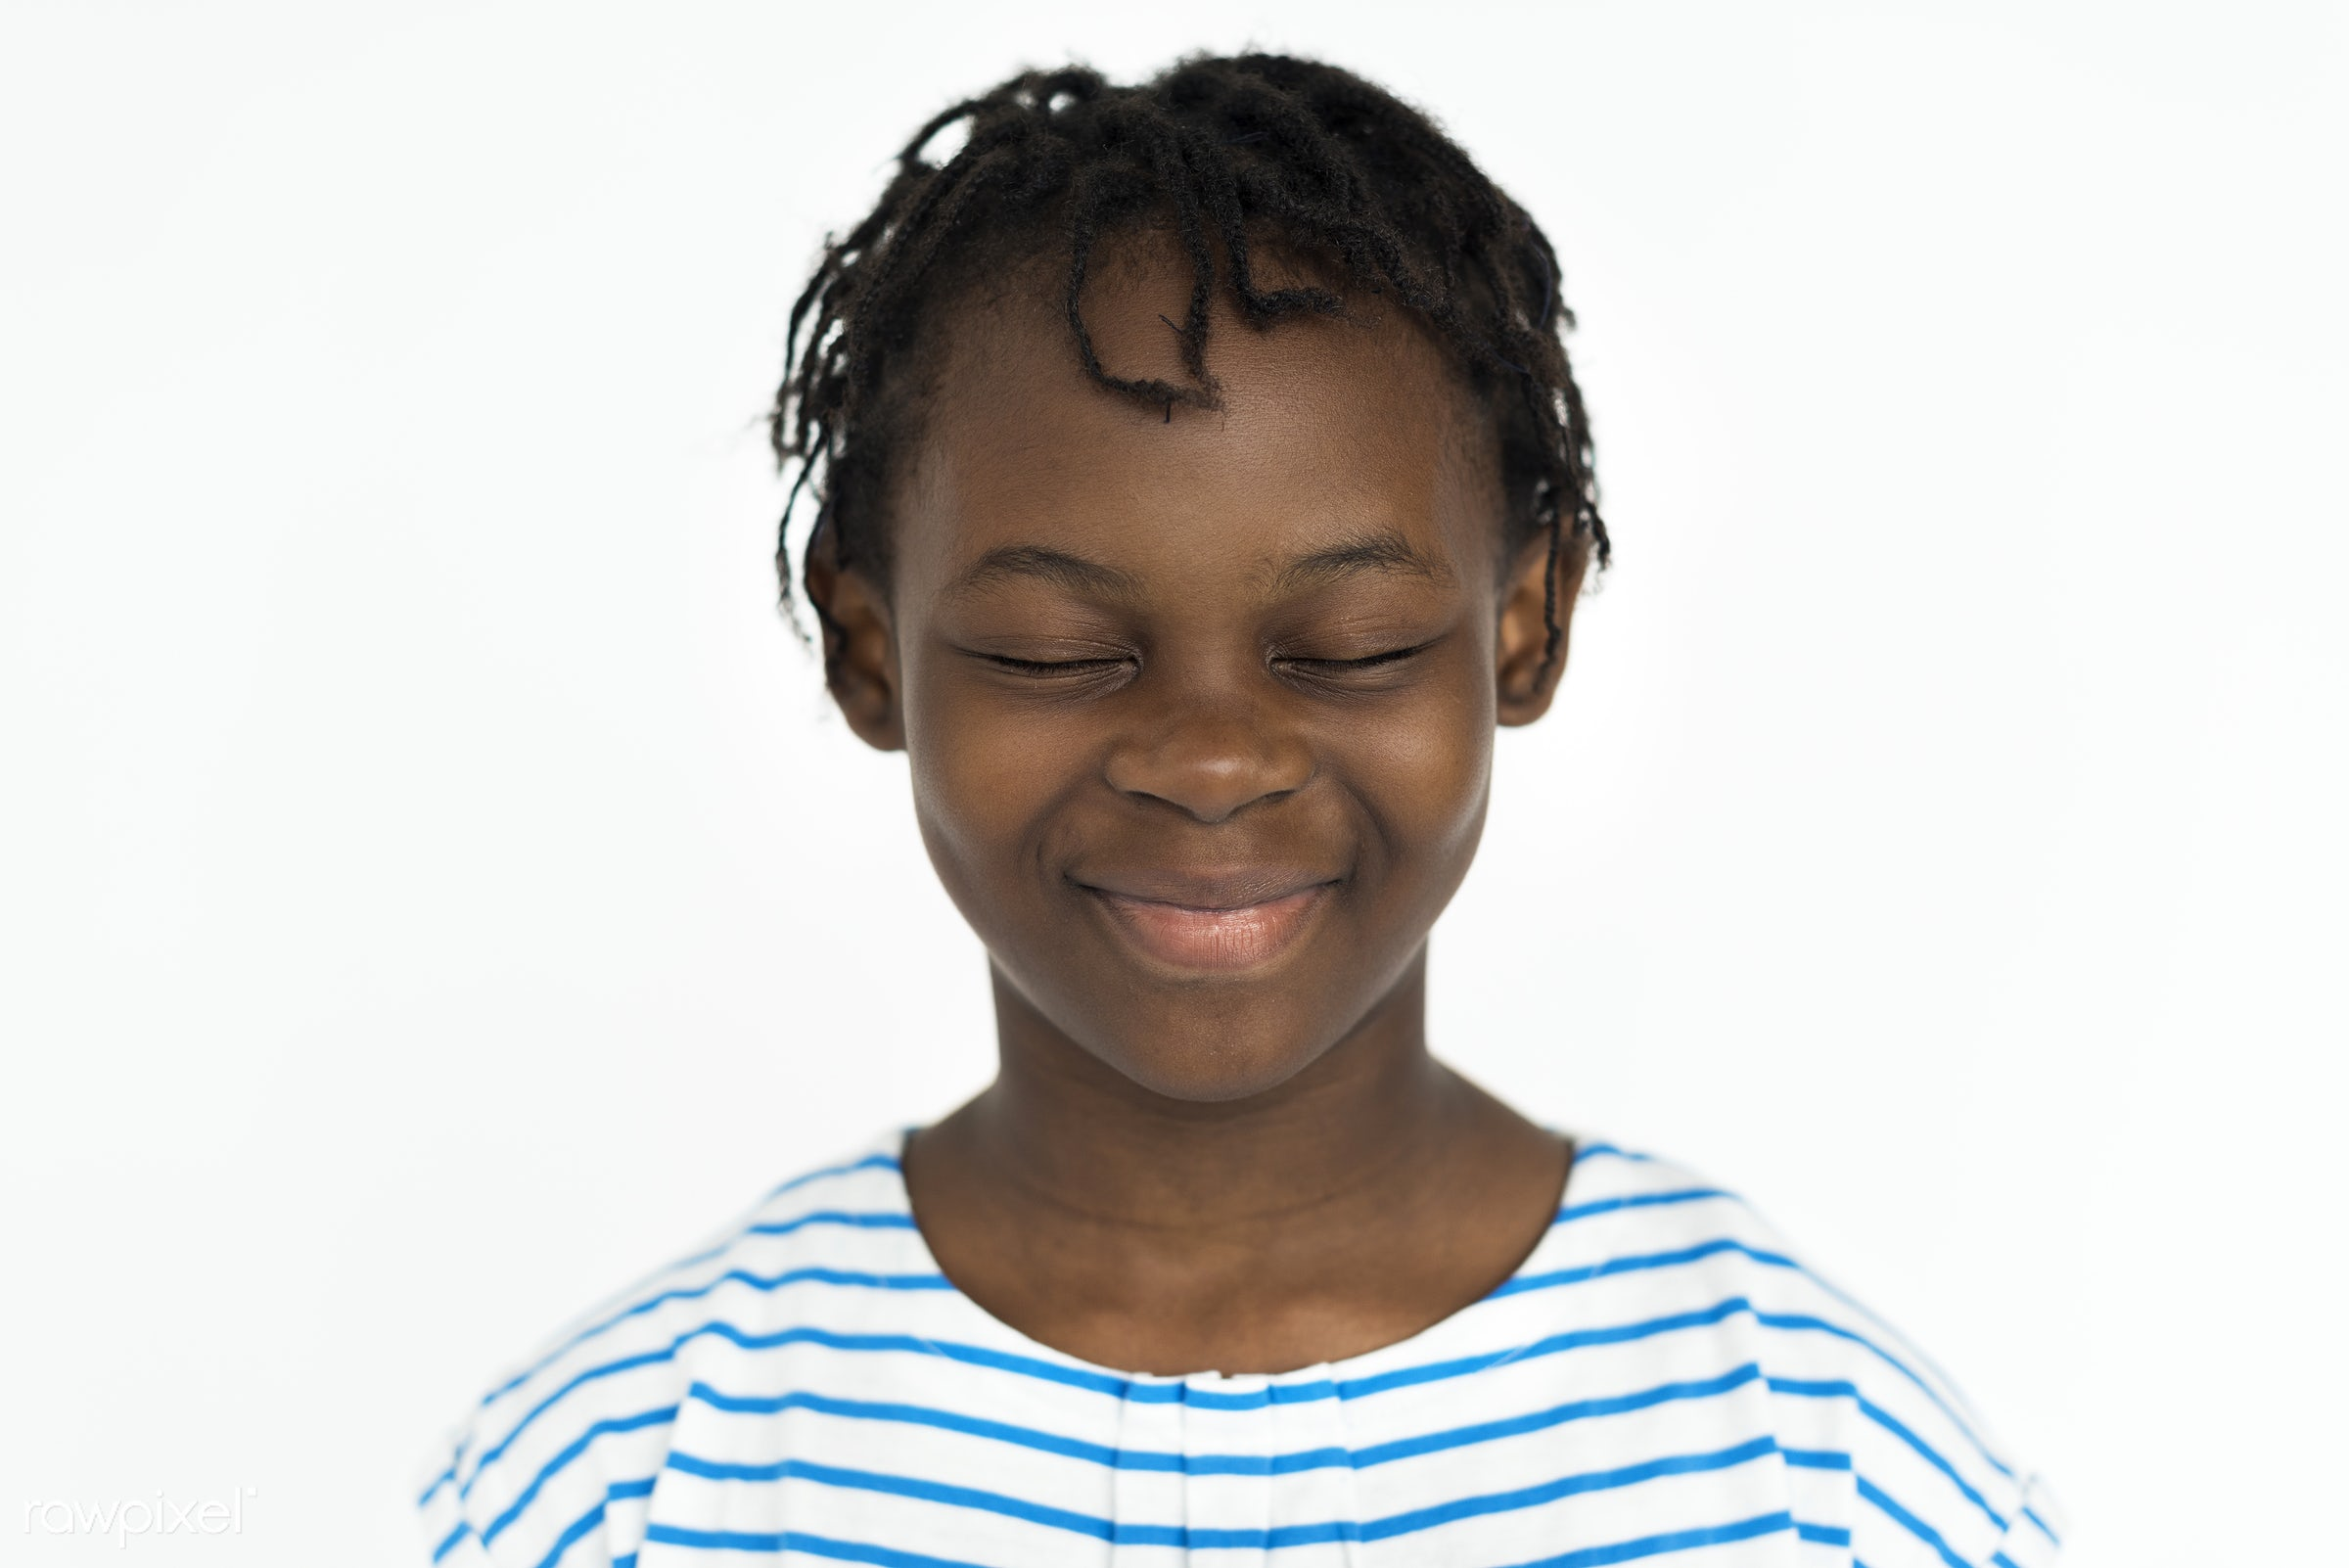 studio, expression, person, people, kid, childhood, smile, cheerful, smiling, isolated, african descent, white, happiness,...